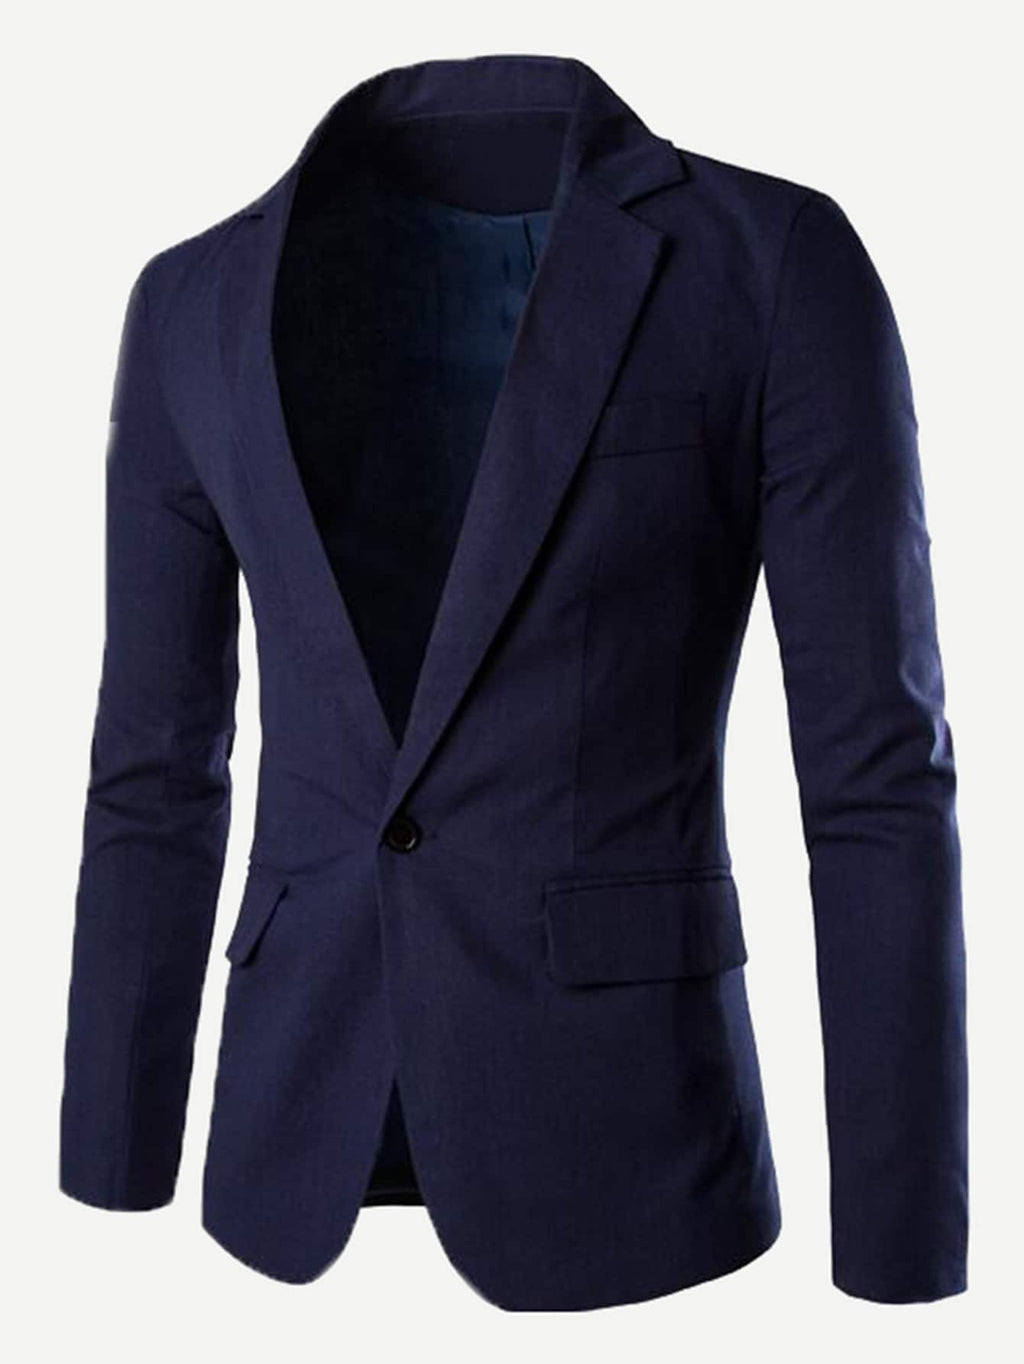 Men's Blazers - Plain Single Button Blazer